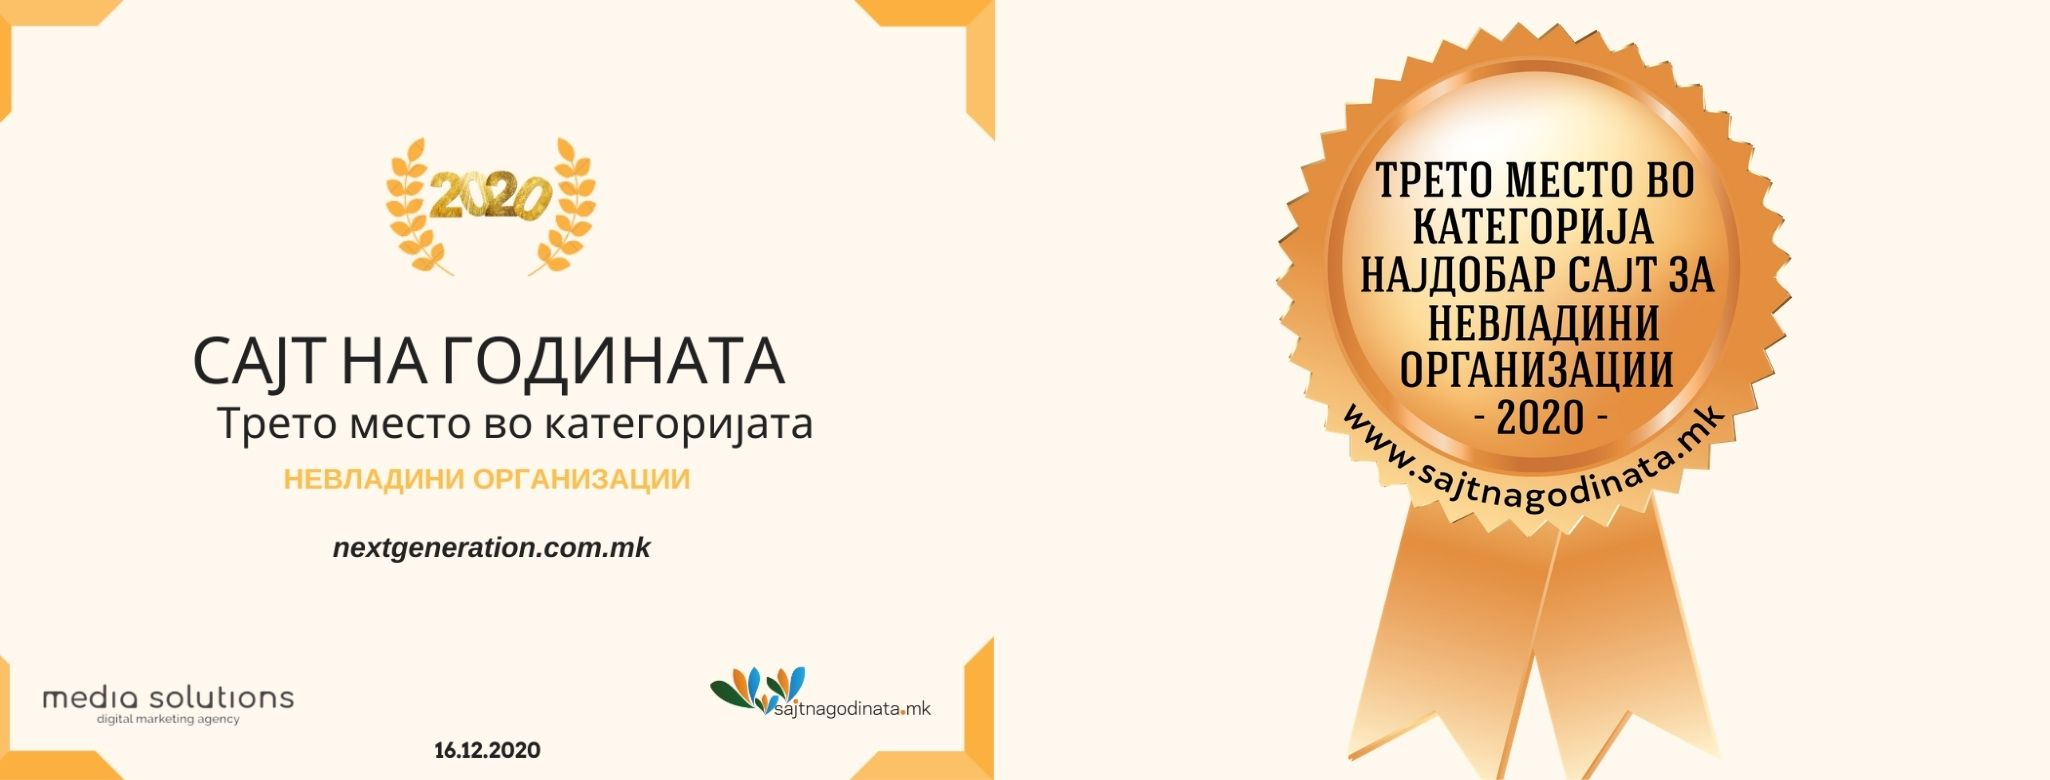 Site Of The Year! – Third Place In Category: Best Site For NGO's